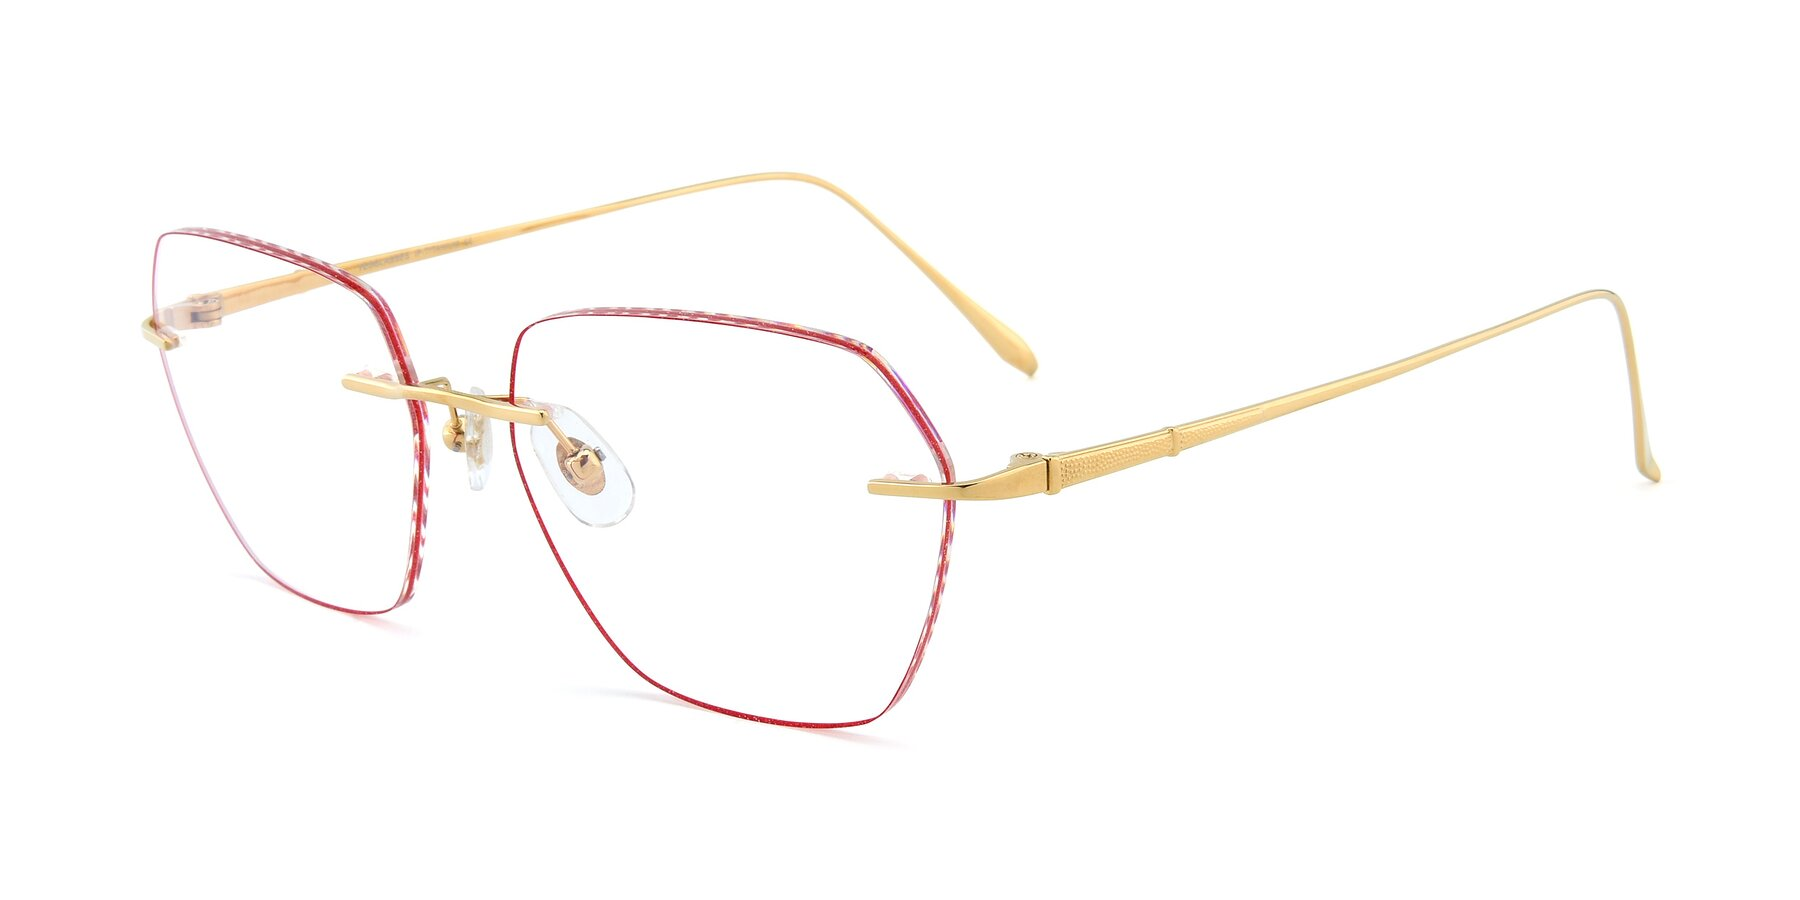 Angle of Y7018 in Gold-Red with Clear Eyeglass Lenses